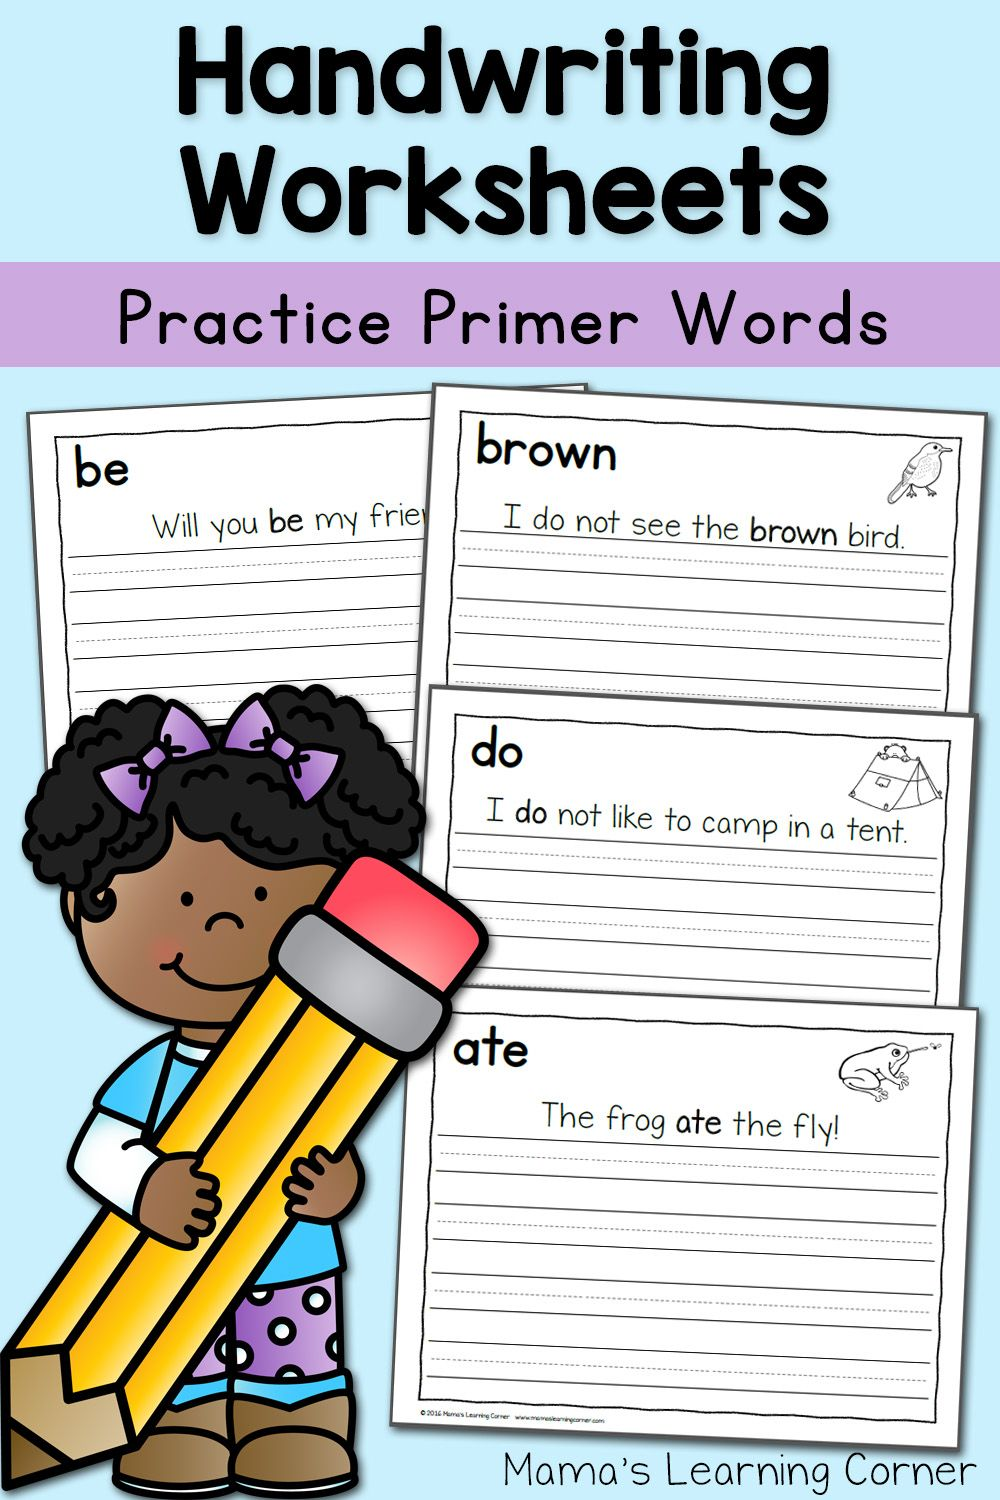 Handwriting Worksheets for Kids: Dolch Primer Words   Handwriting ...